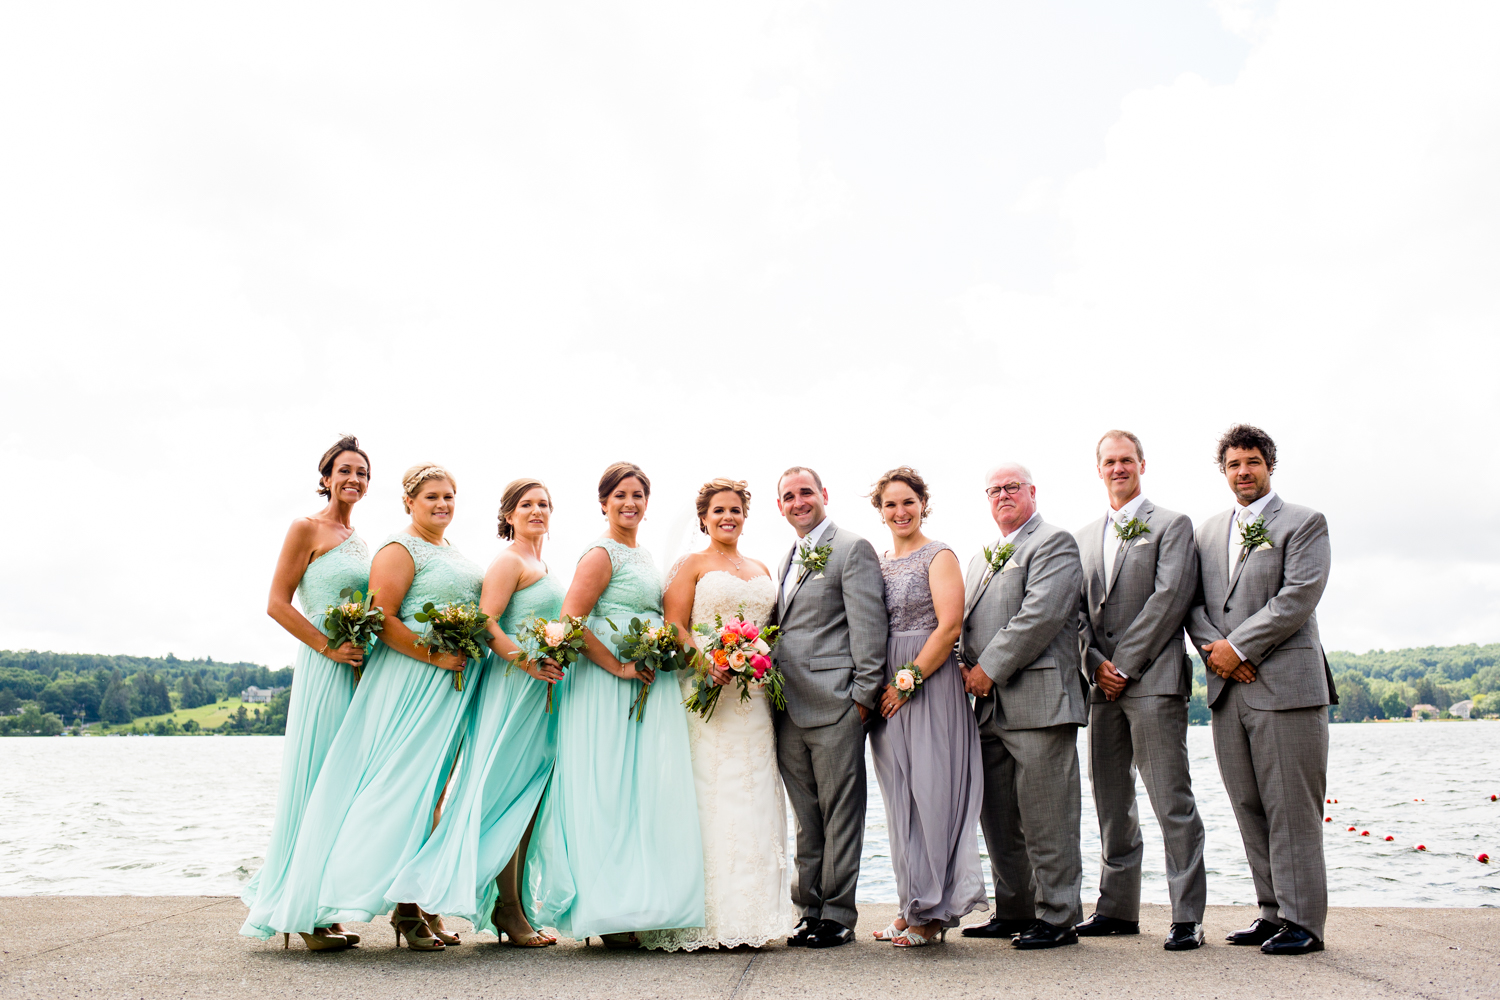 Bridal party in front of a lake.